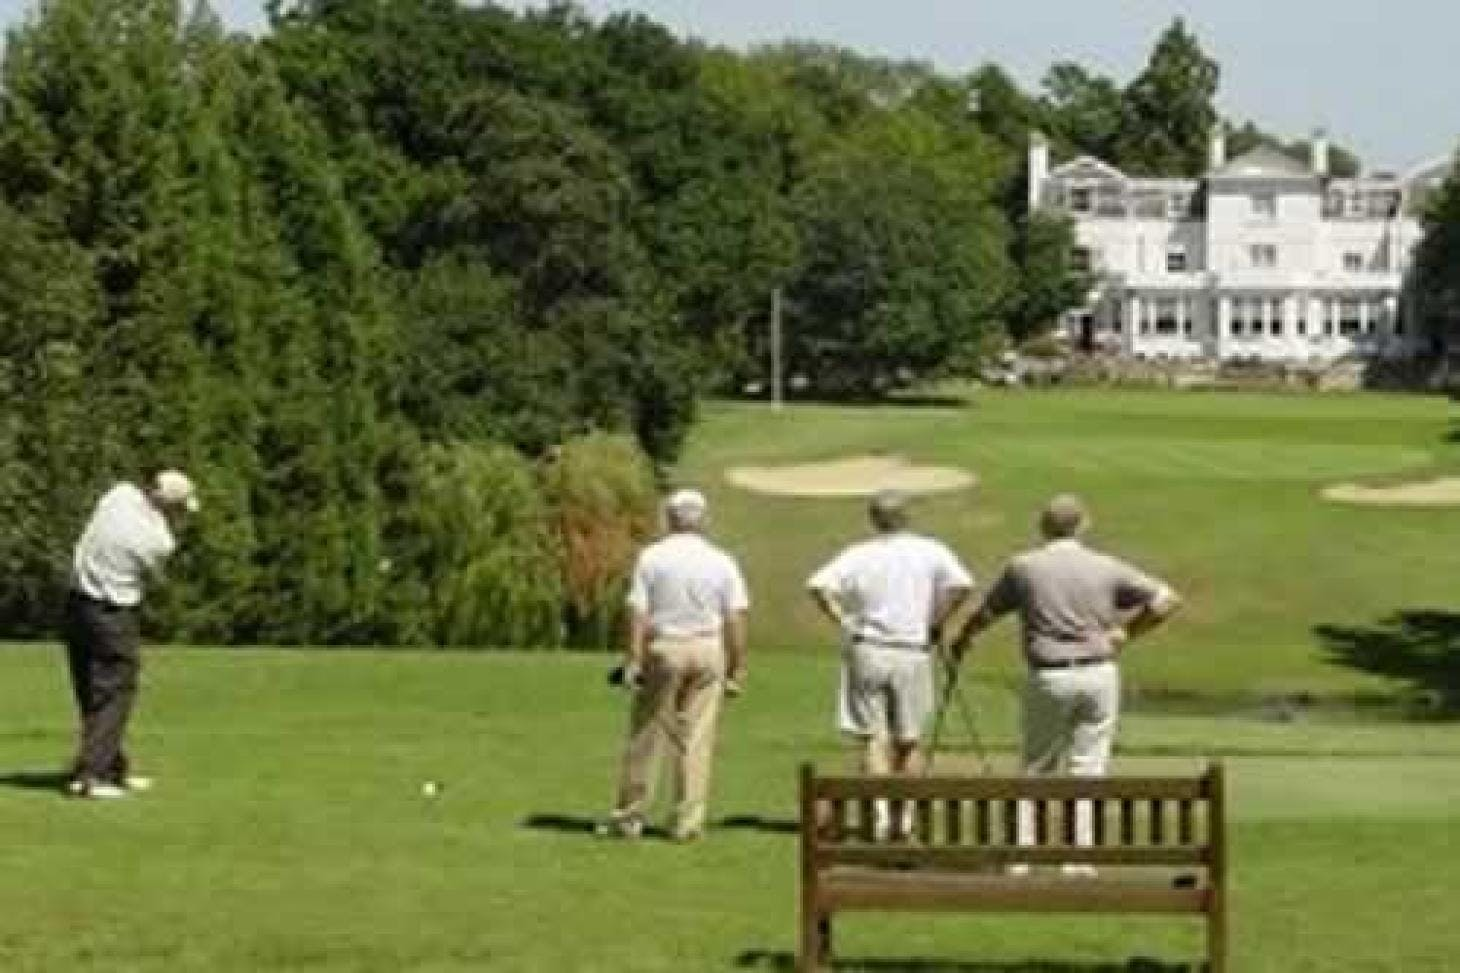 North Middlesex Golf Club 18 hole golf course